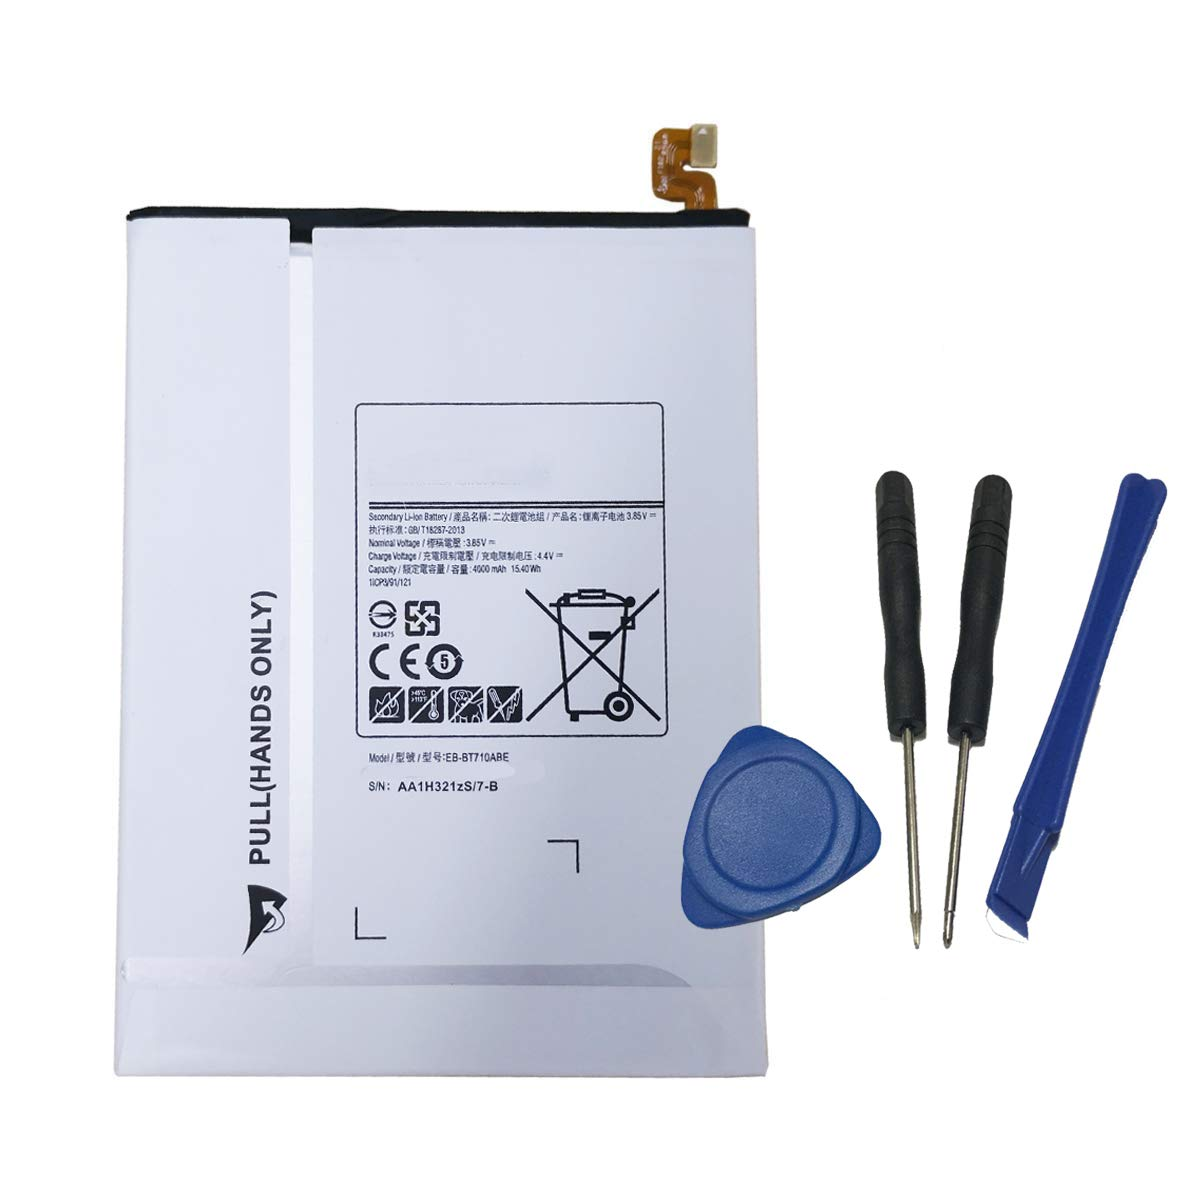 SM-T710 YNYNEW Replacement EB-BT710ABA Tablet Battery for Samsung Galaxy Tab S2 8.0 T715 T719 with Free Tools T713 Tab S2 Nook 8.0